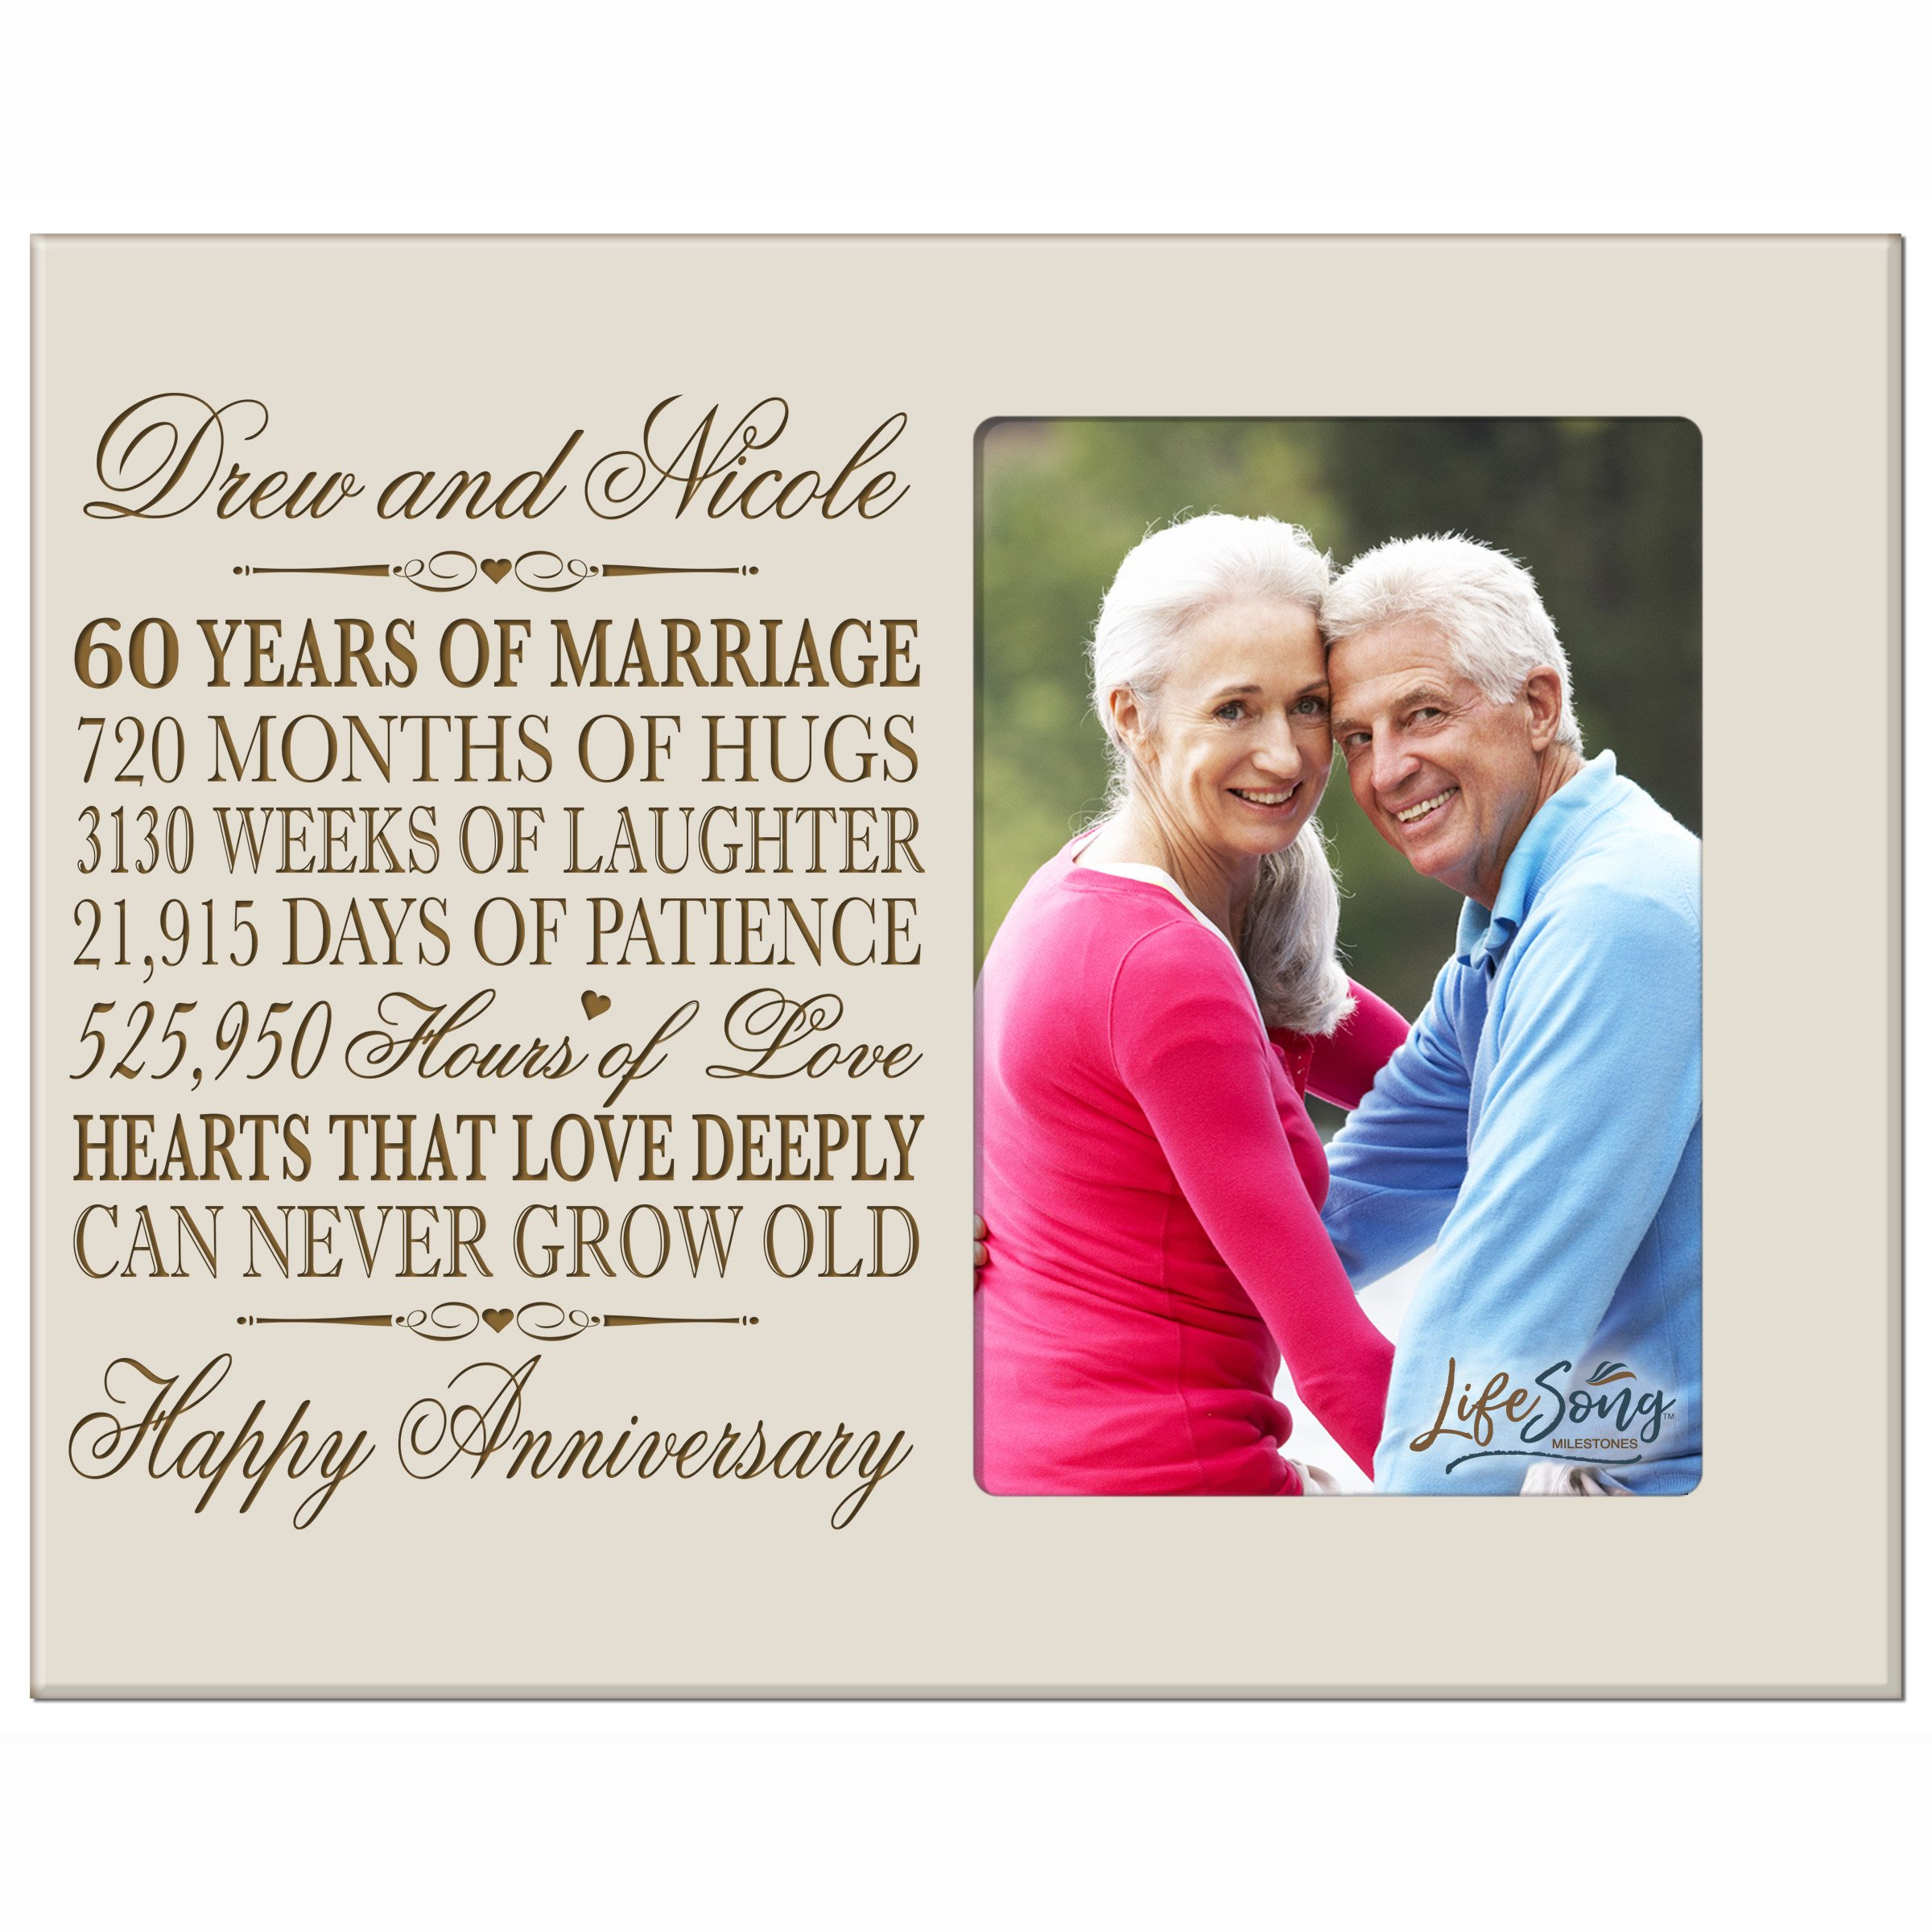 LifeSong Milestones Personalized 60th Year Wedding for Couple Custom Engraved 60th Wedding Frame Holds 1 4x6 Photo 8'' H X 10'' W (Ivory) by LifeSong Milestones